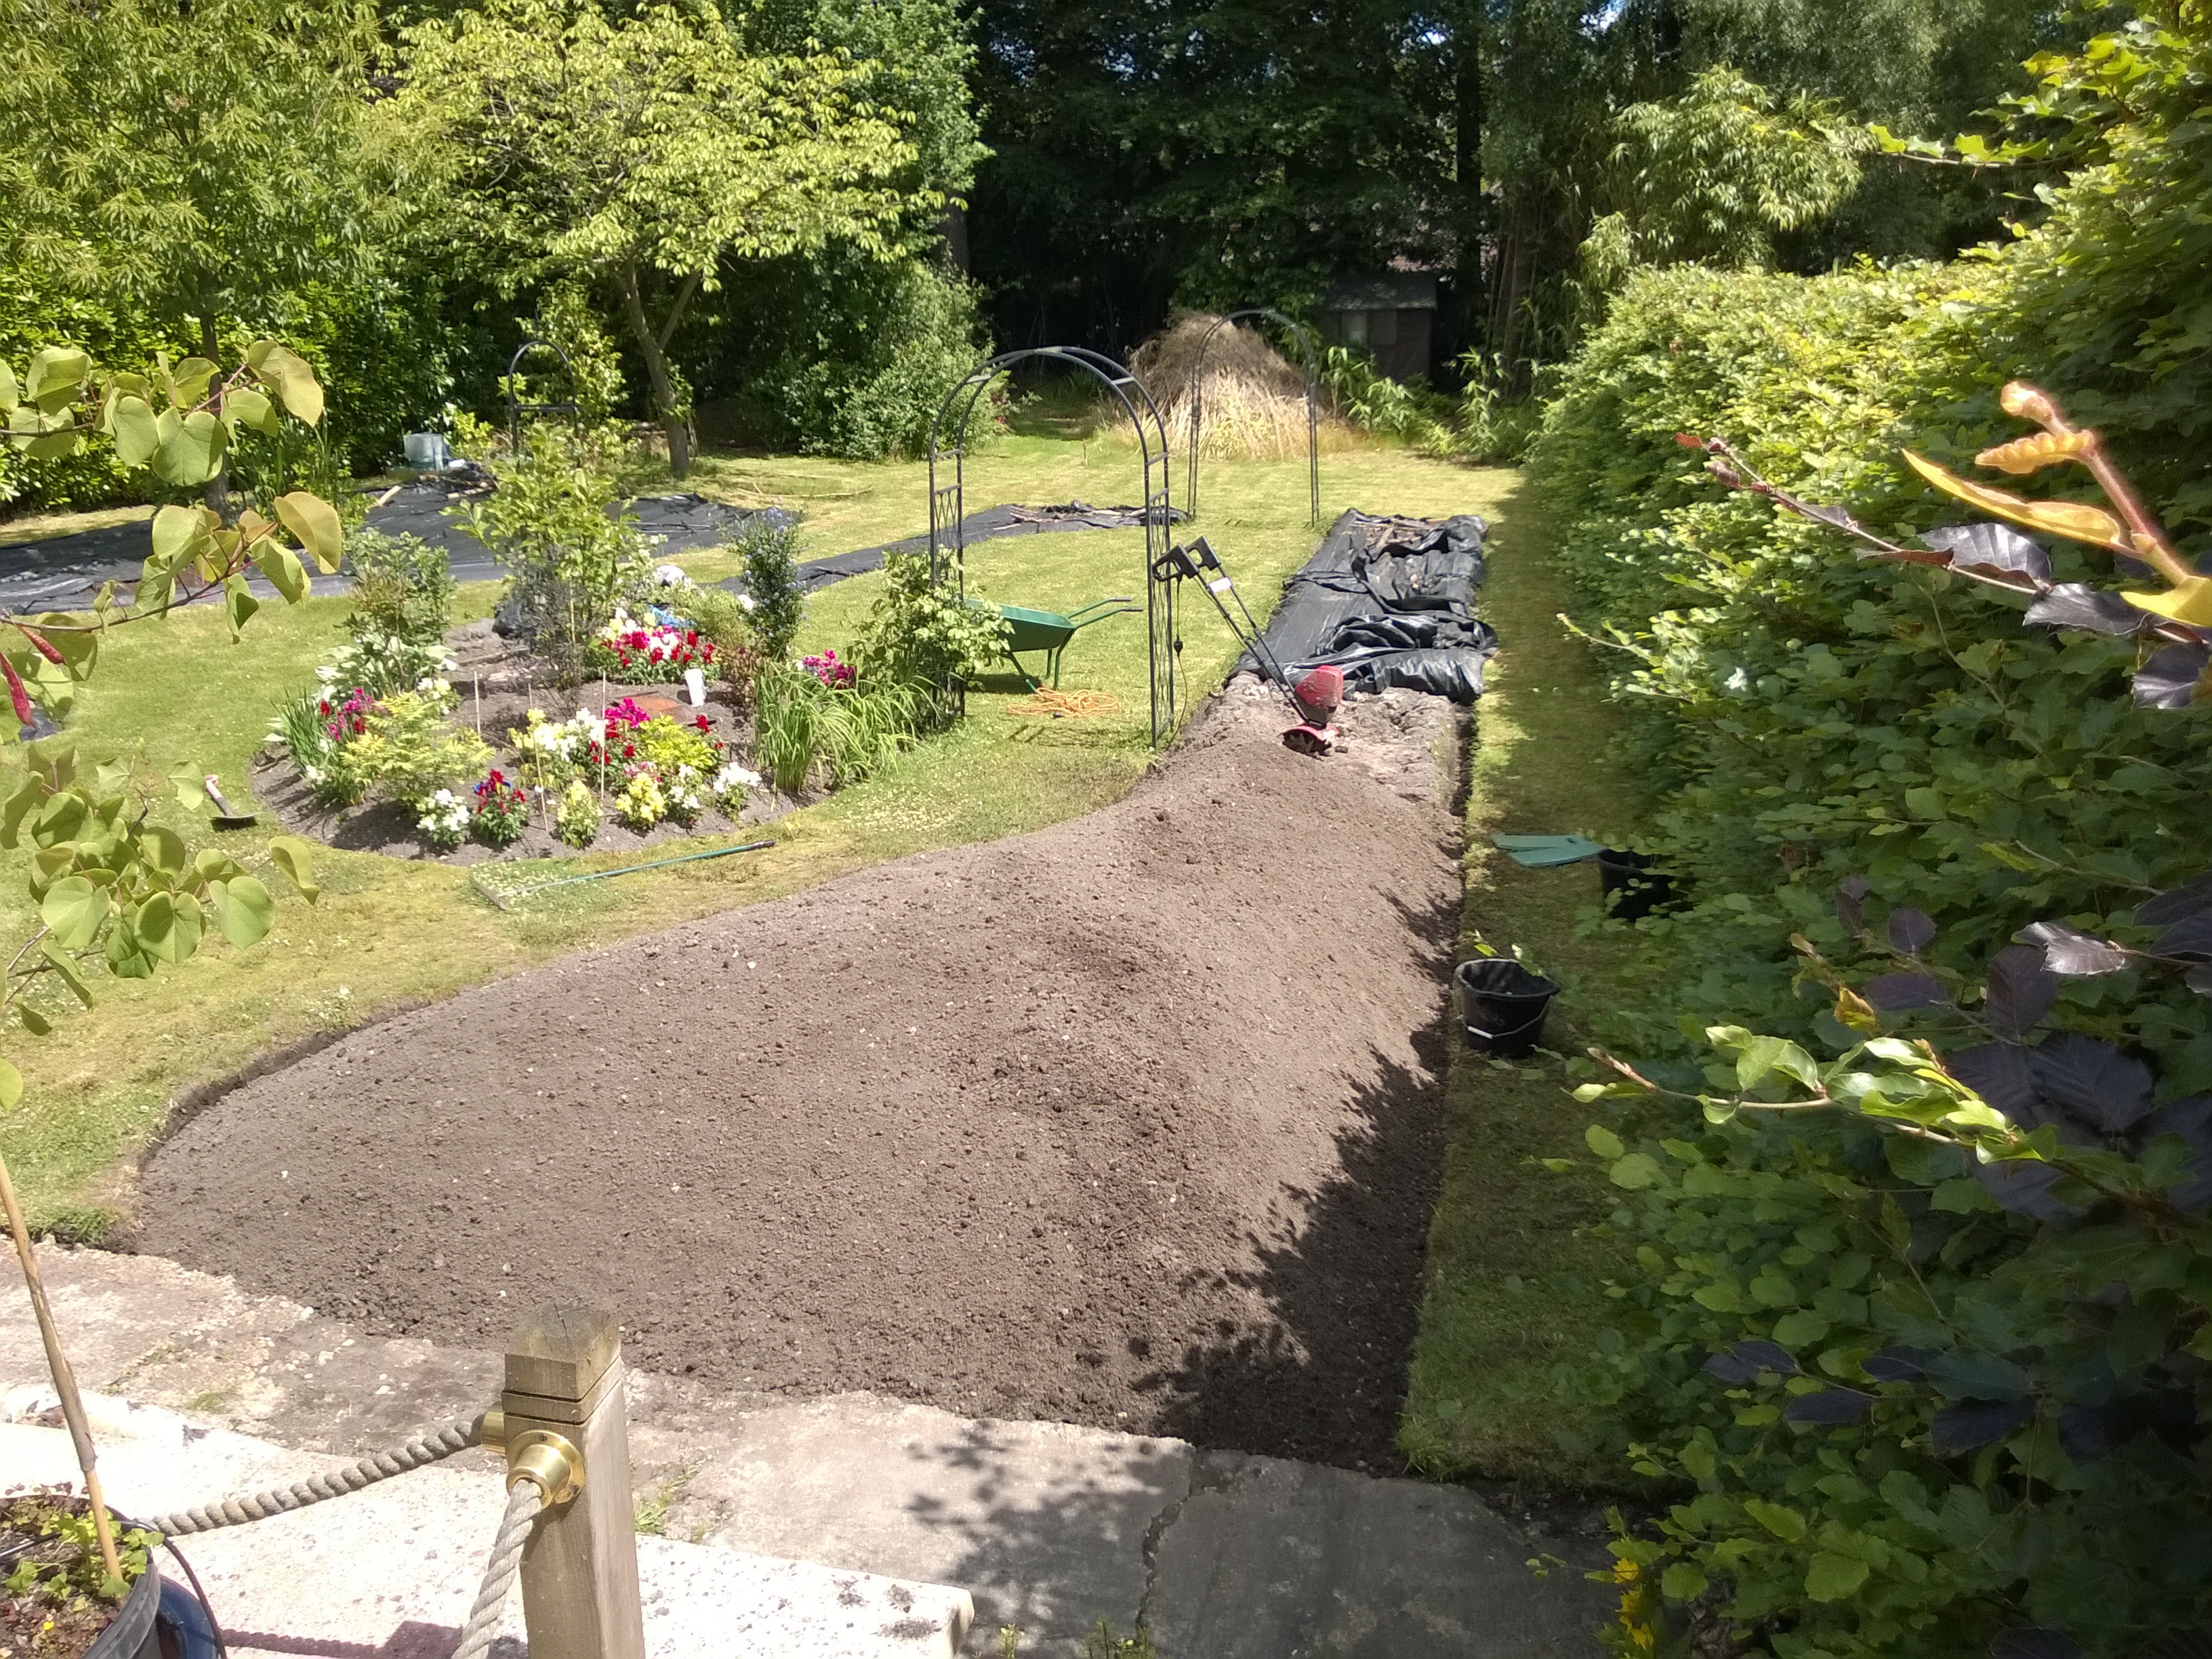 New Border In Progress